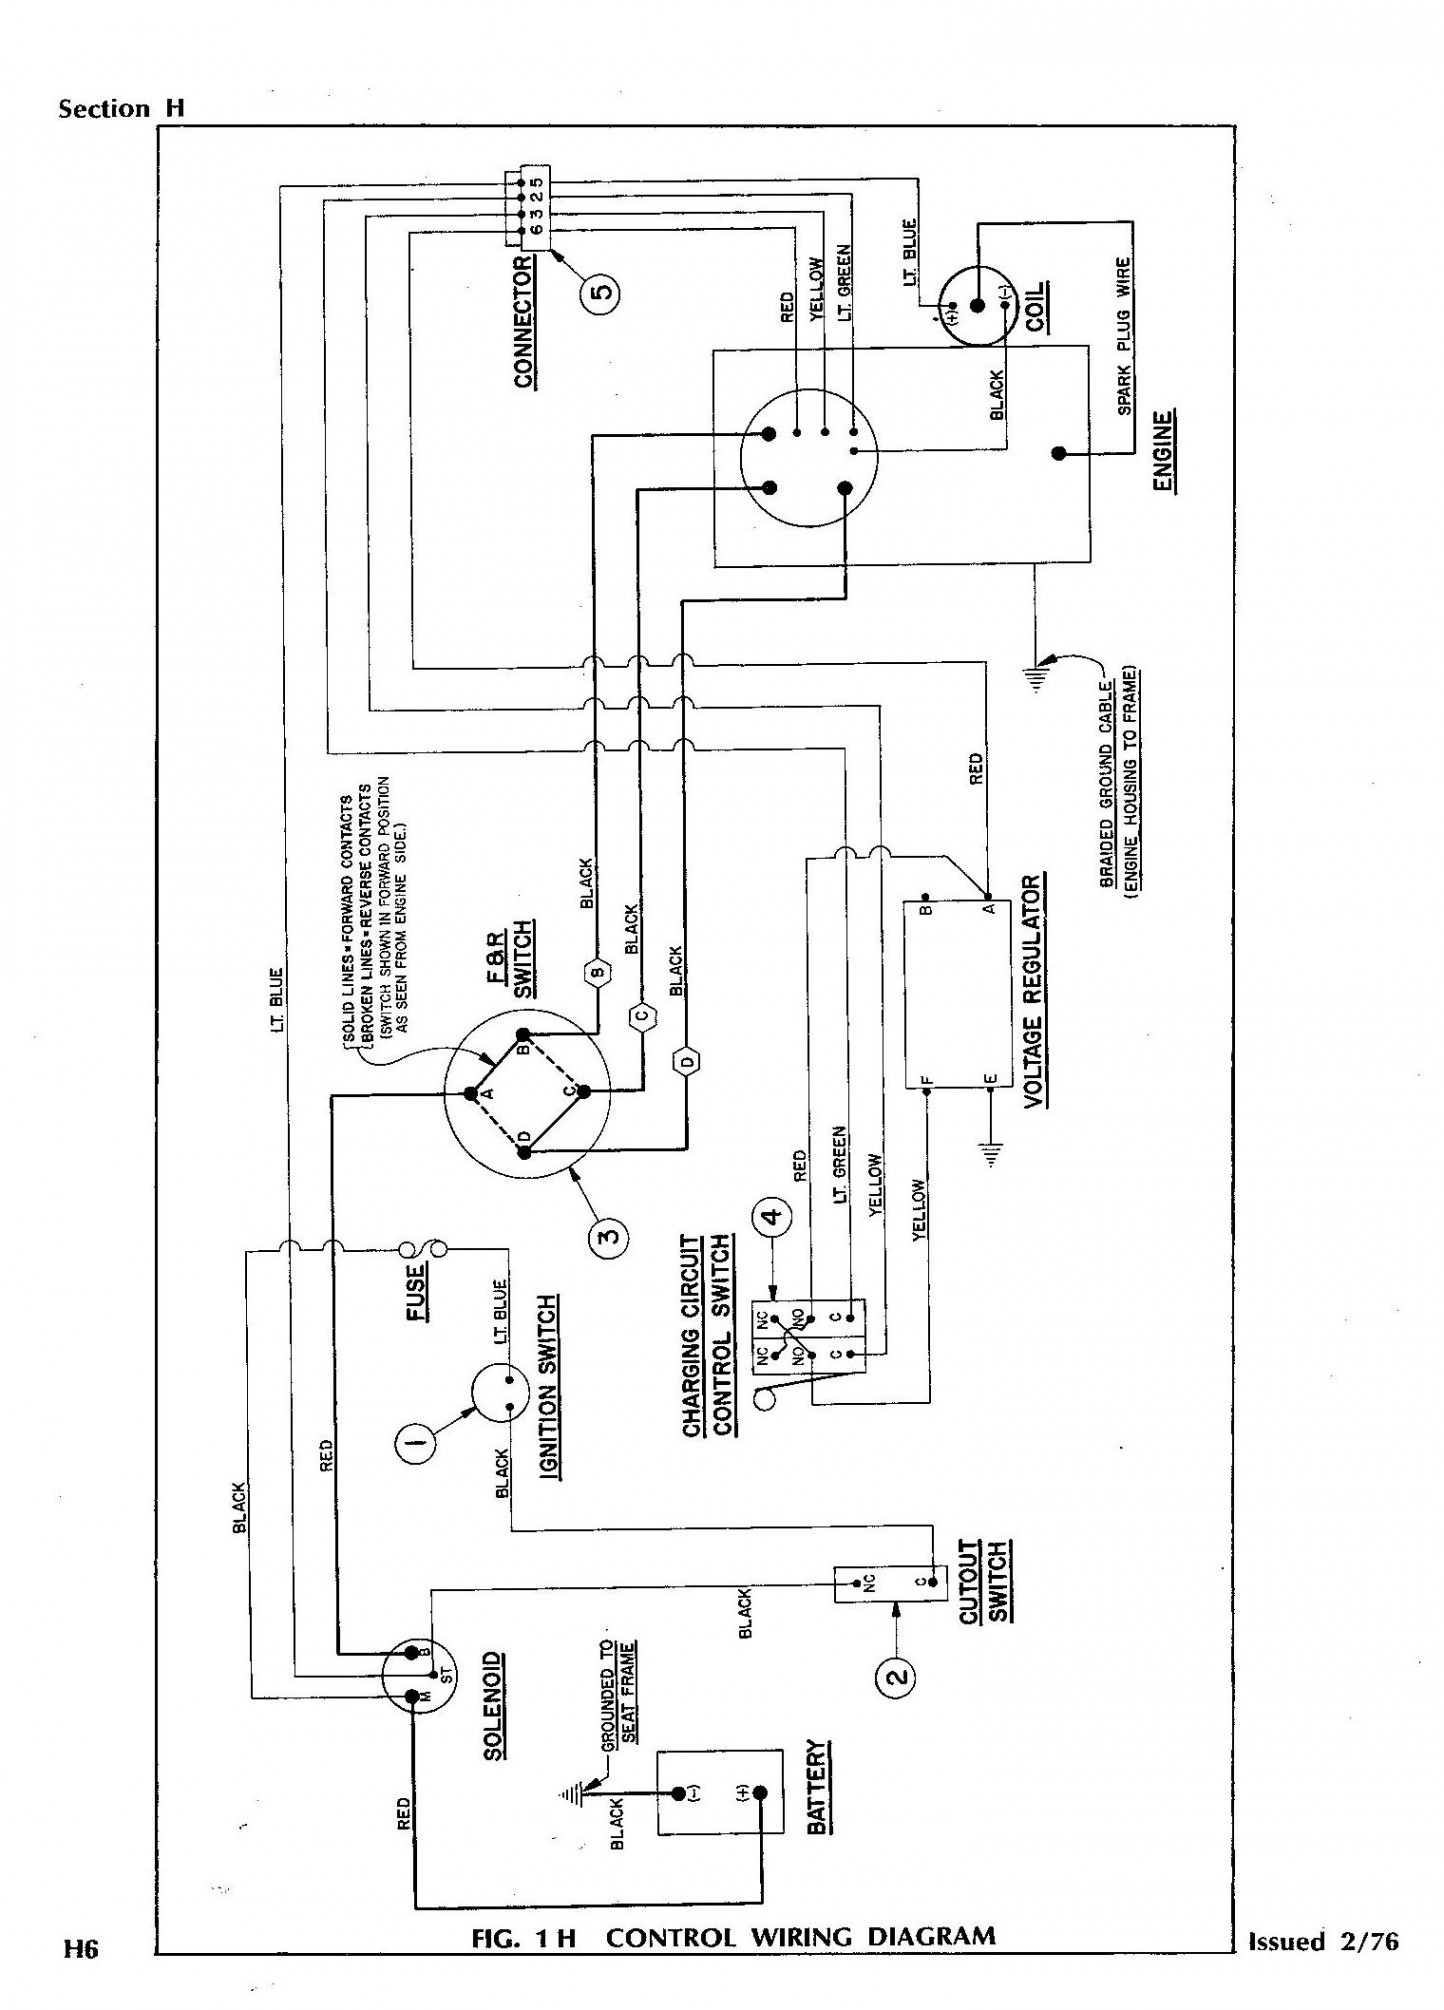 [CSDW_4250]   DIAGRAM] Non Dcs Ezgo Golf Cart Wiring Diagram FULL Version HD Quality Wiring  Diagram - VENNDIAGRAMONLINE.NUITDEBOUTAIX.FR | 1997 Ez Go Txt Wiring Diagram |  | venndiagramonline.nuitdeboutaix.fr